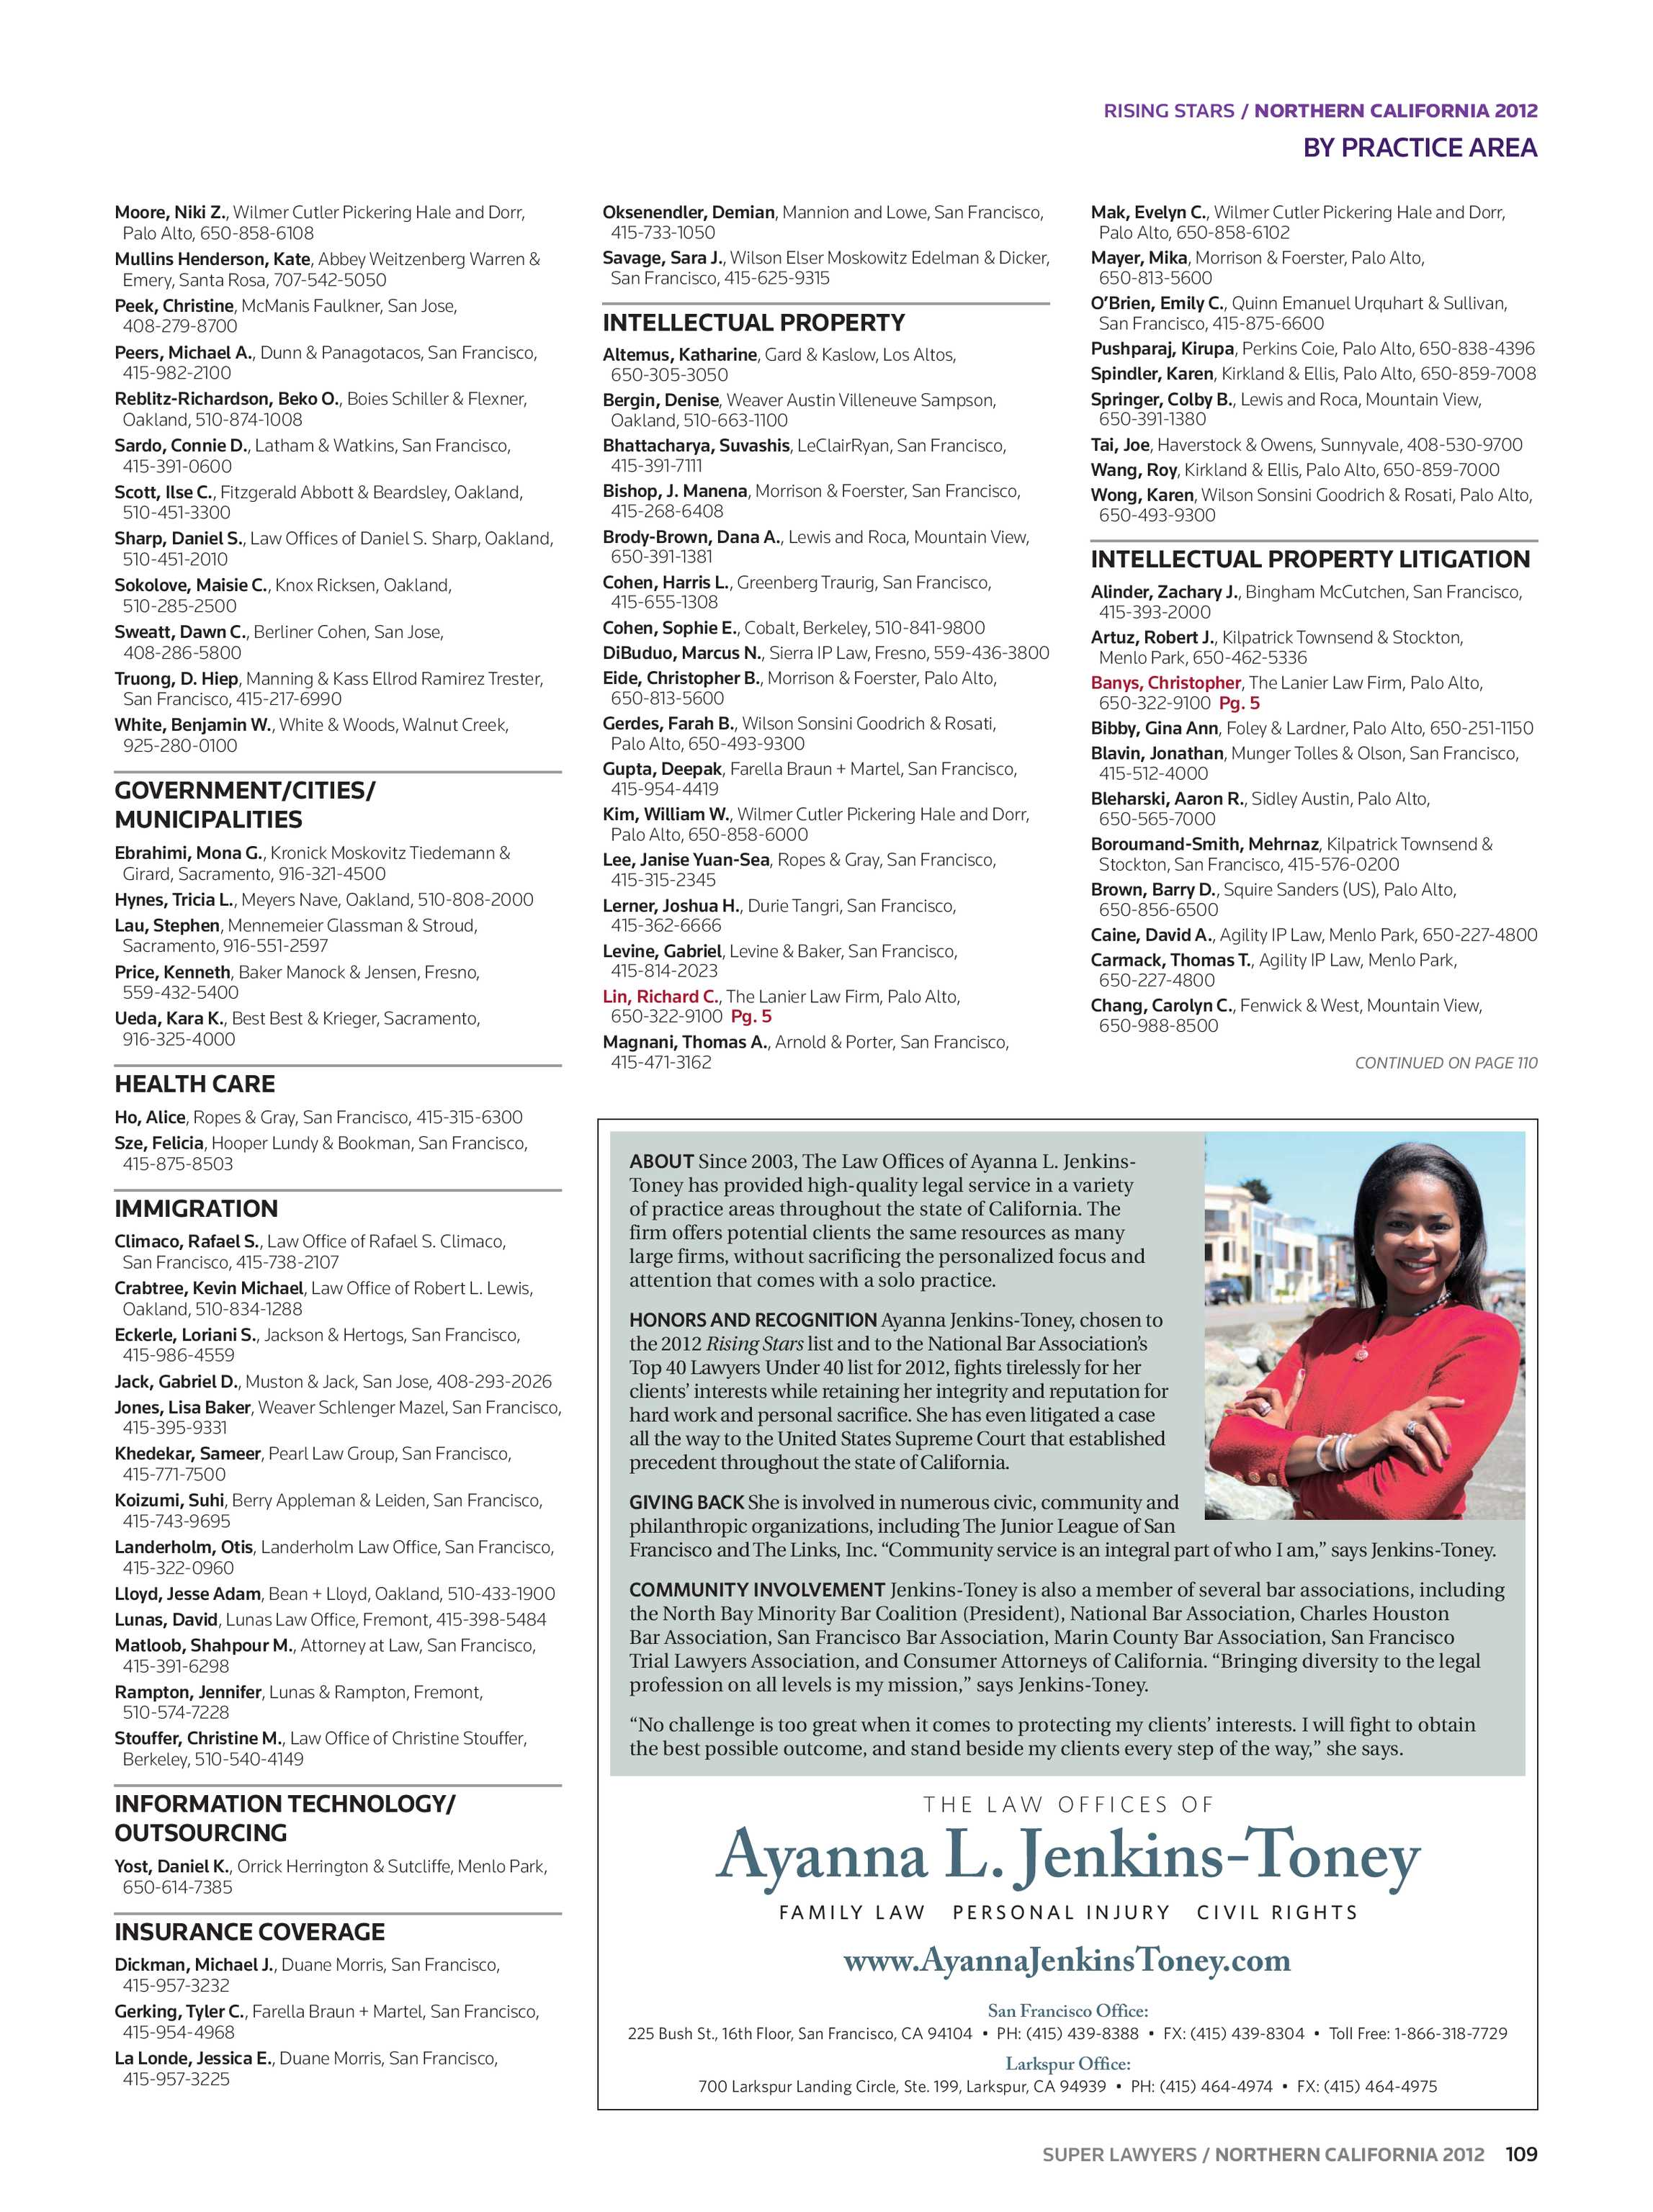 Super Lawyers - Northern California 2012 - page 109